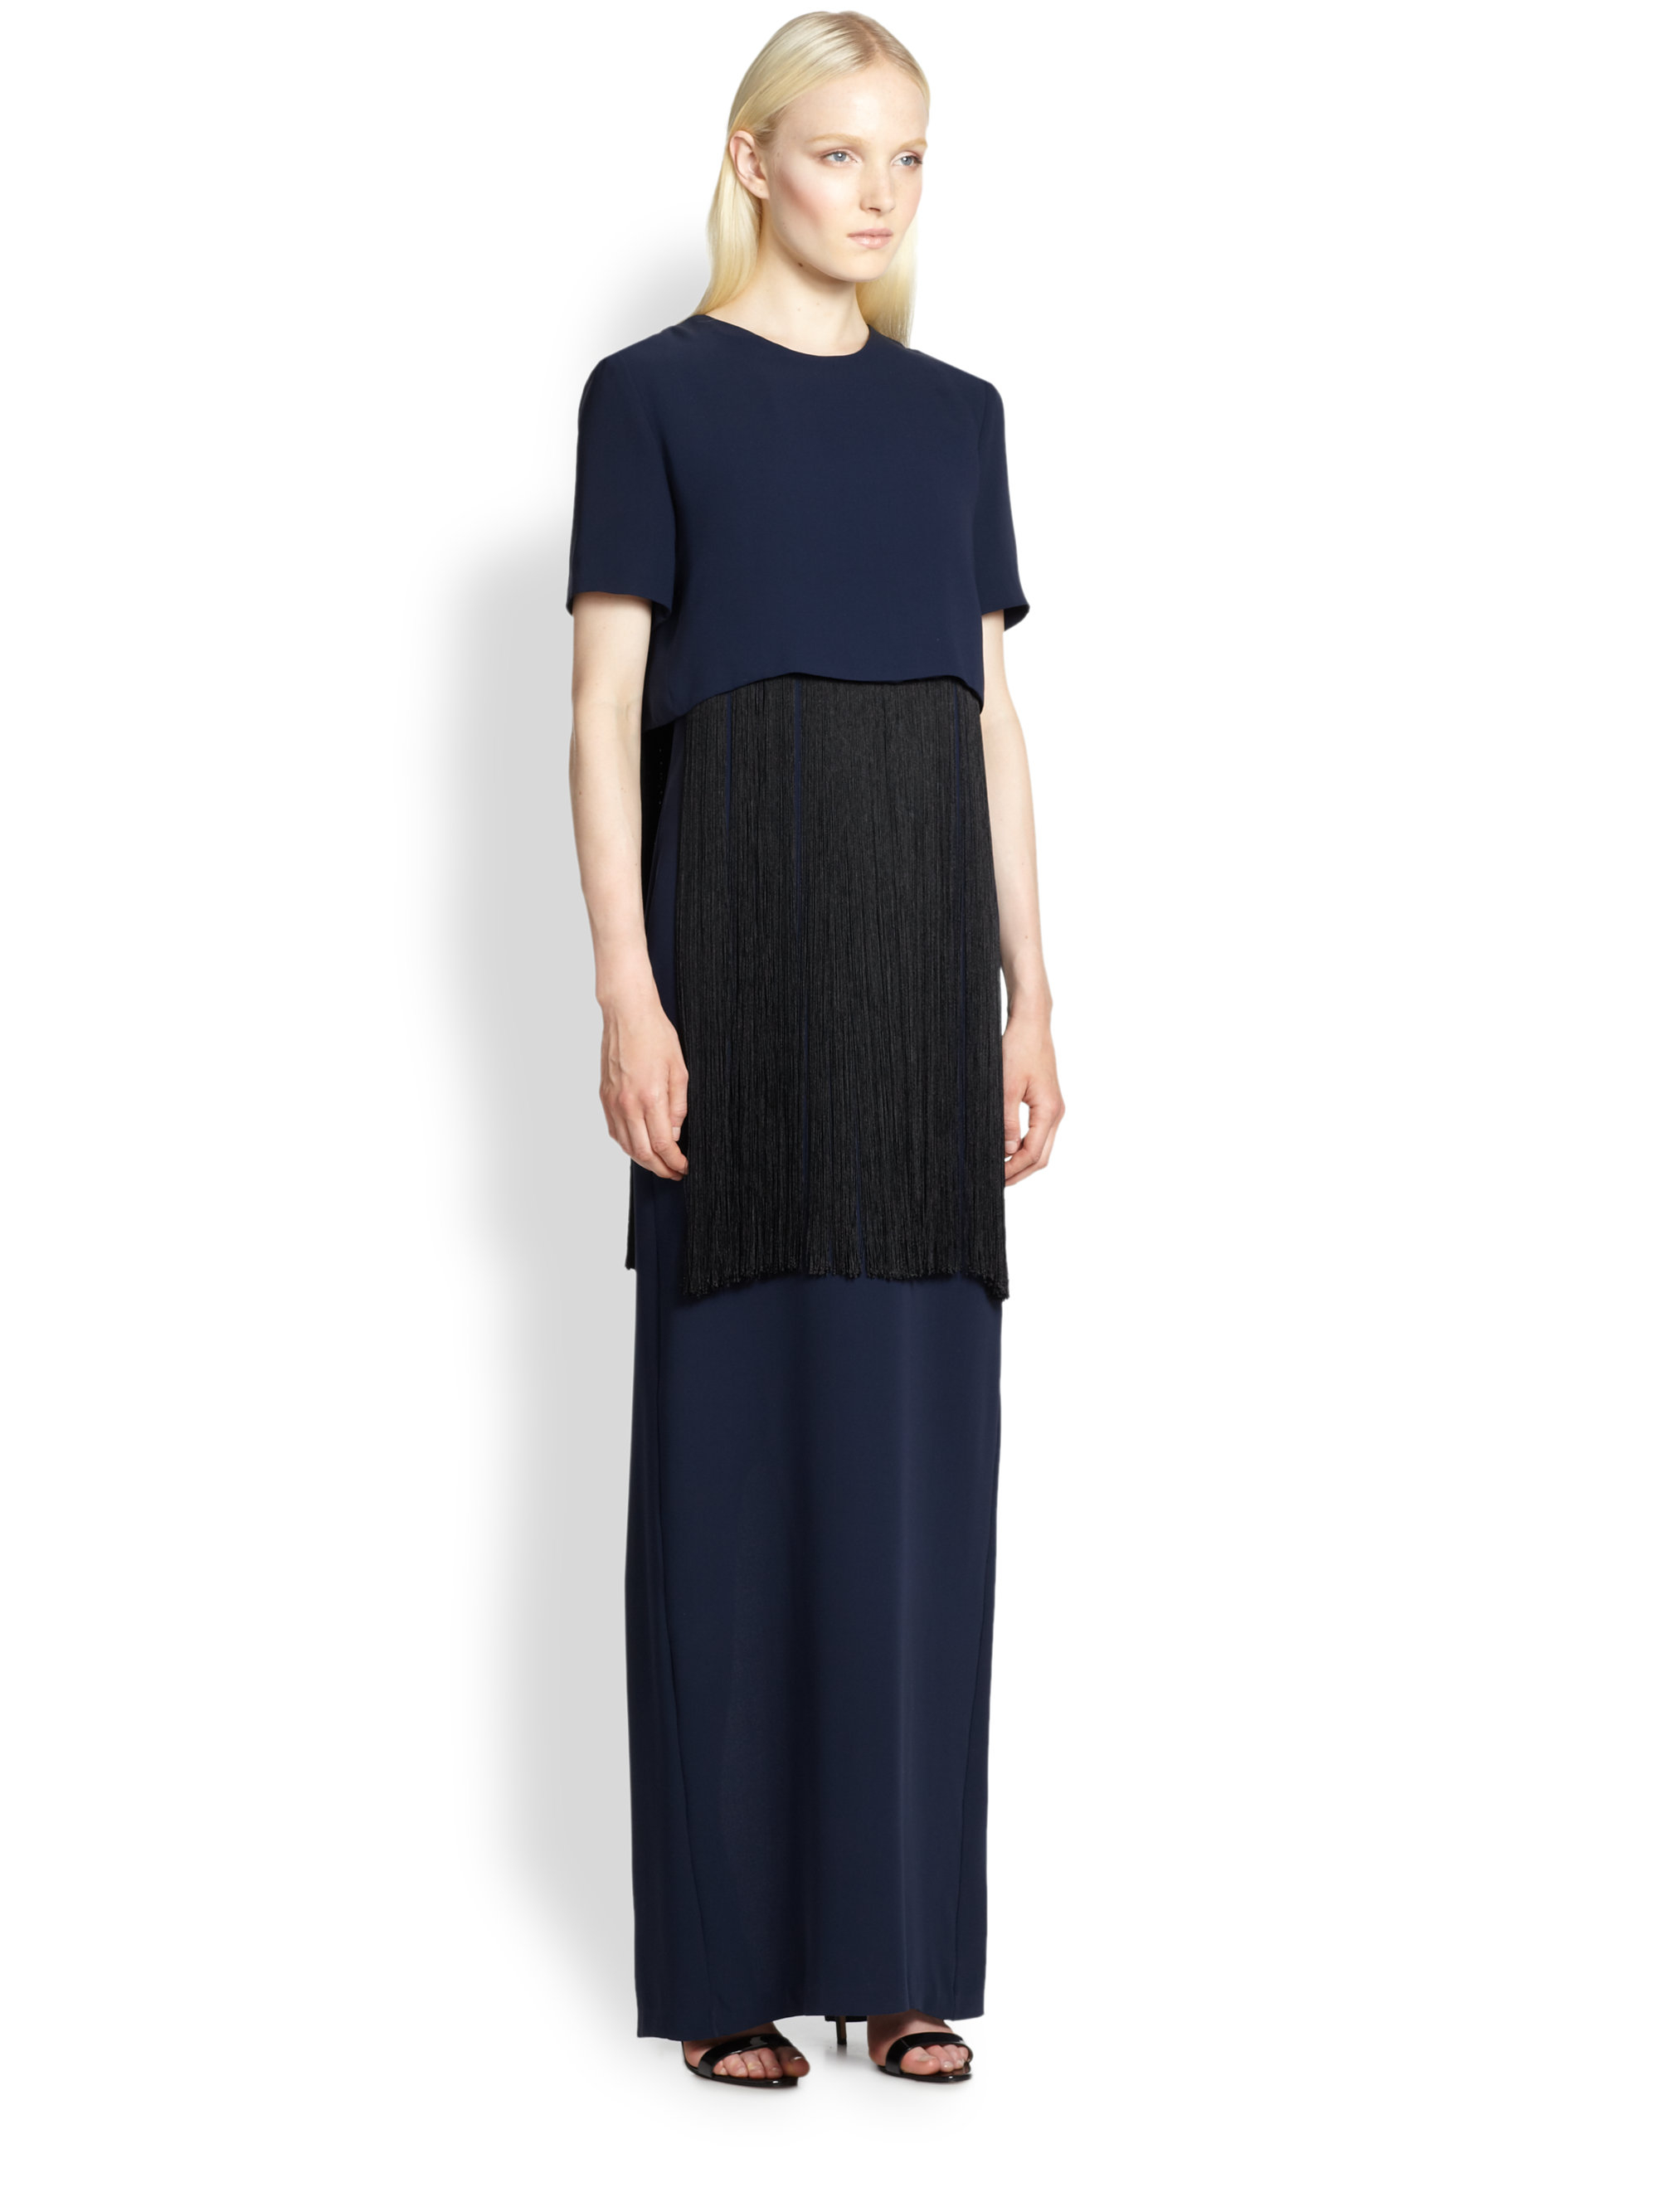 Adam lippes fringed crepe gown in black navy black lyst